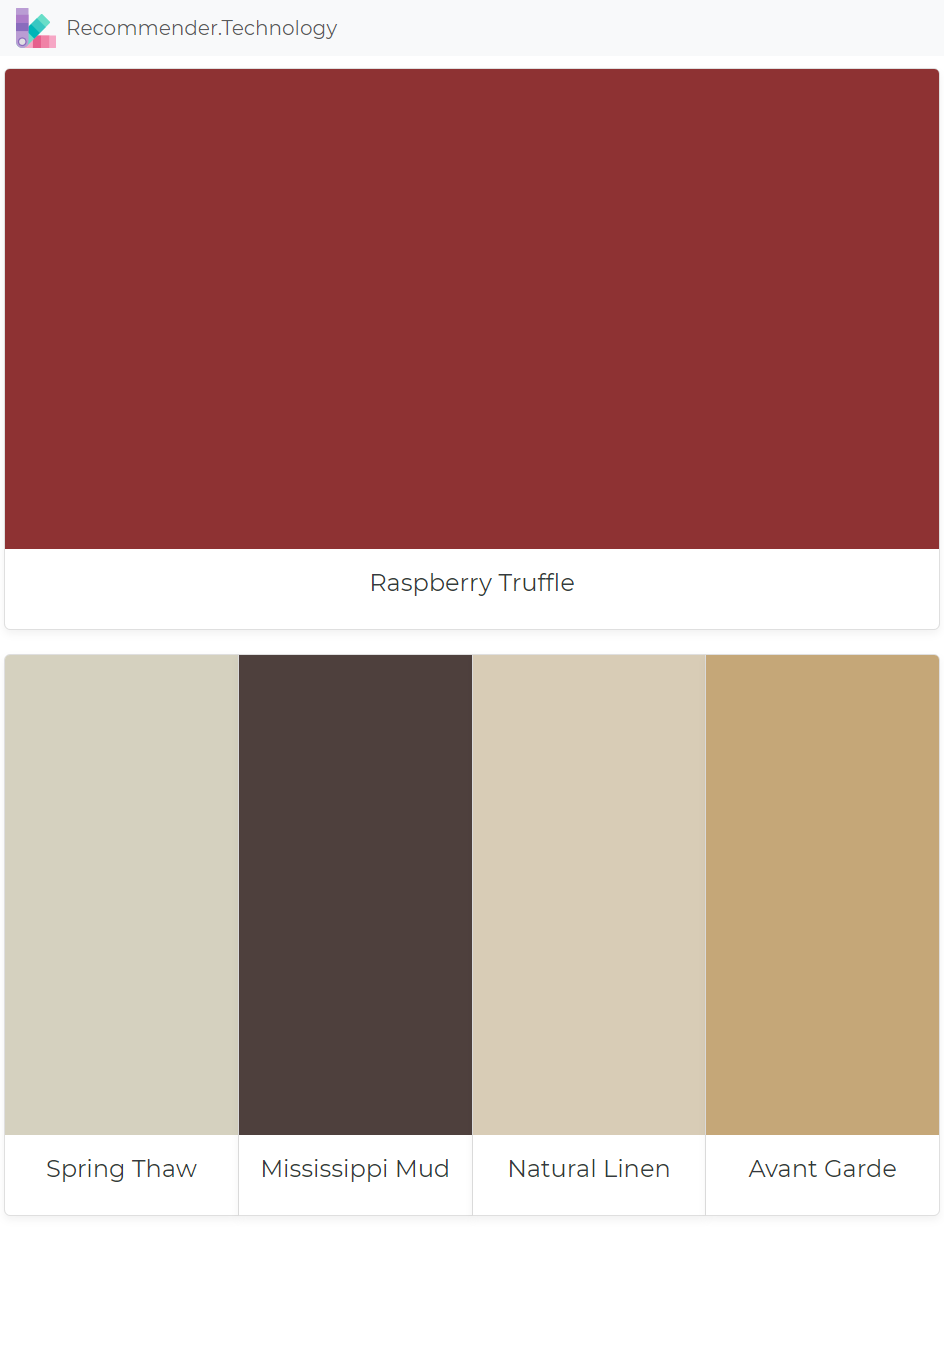 Raspberry Truffle Spring Thaw Mississippi Mud Natural Linen Avant Garde Paint Color Palettes Paint Colors Benjamin Moore Perfect Paint Color